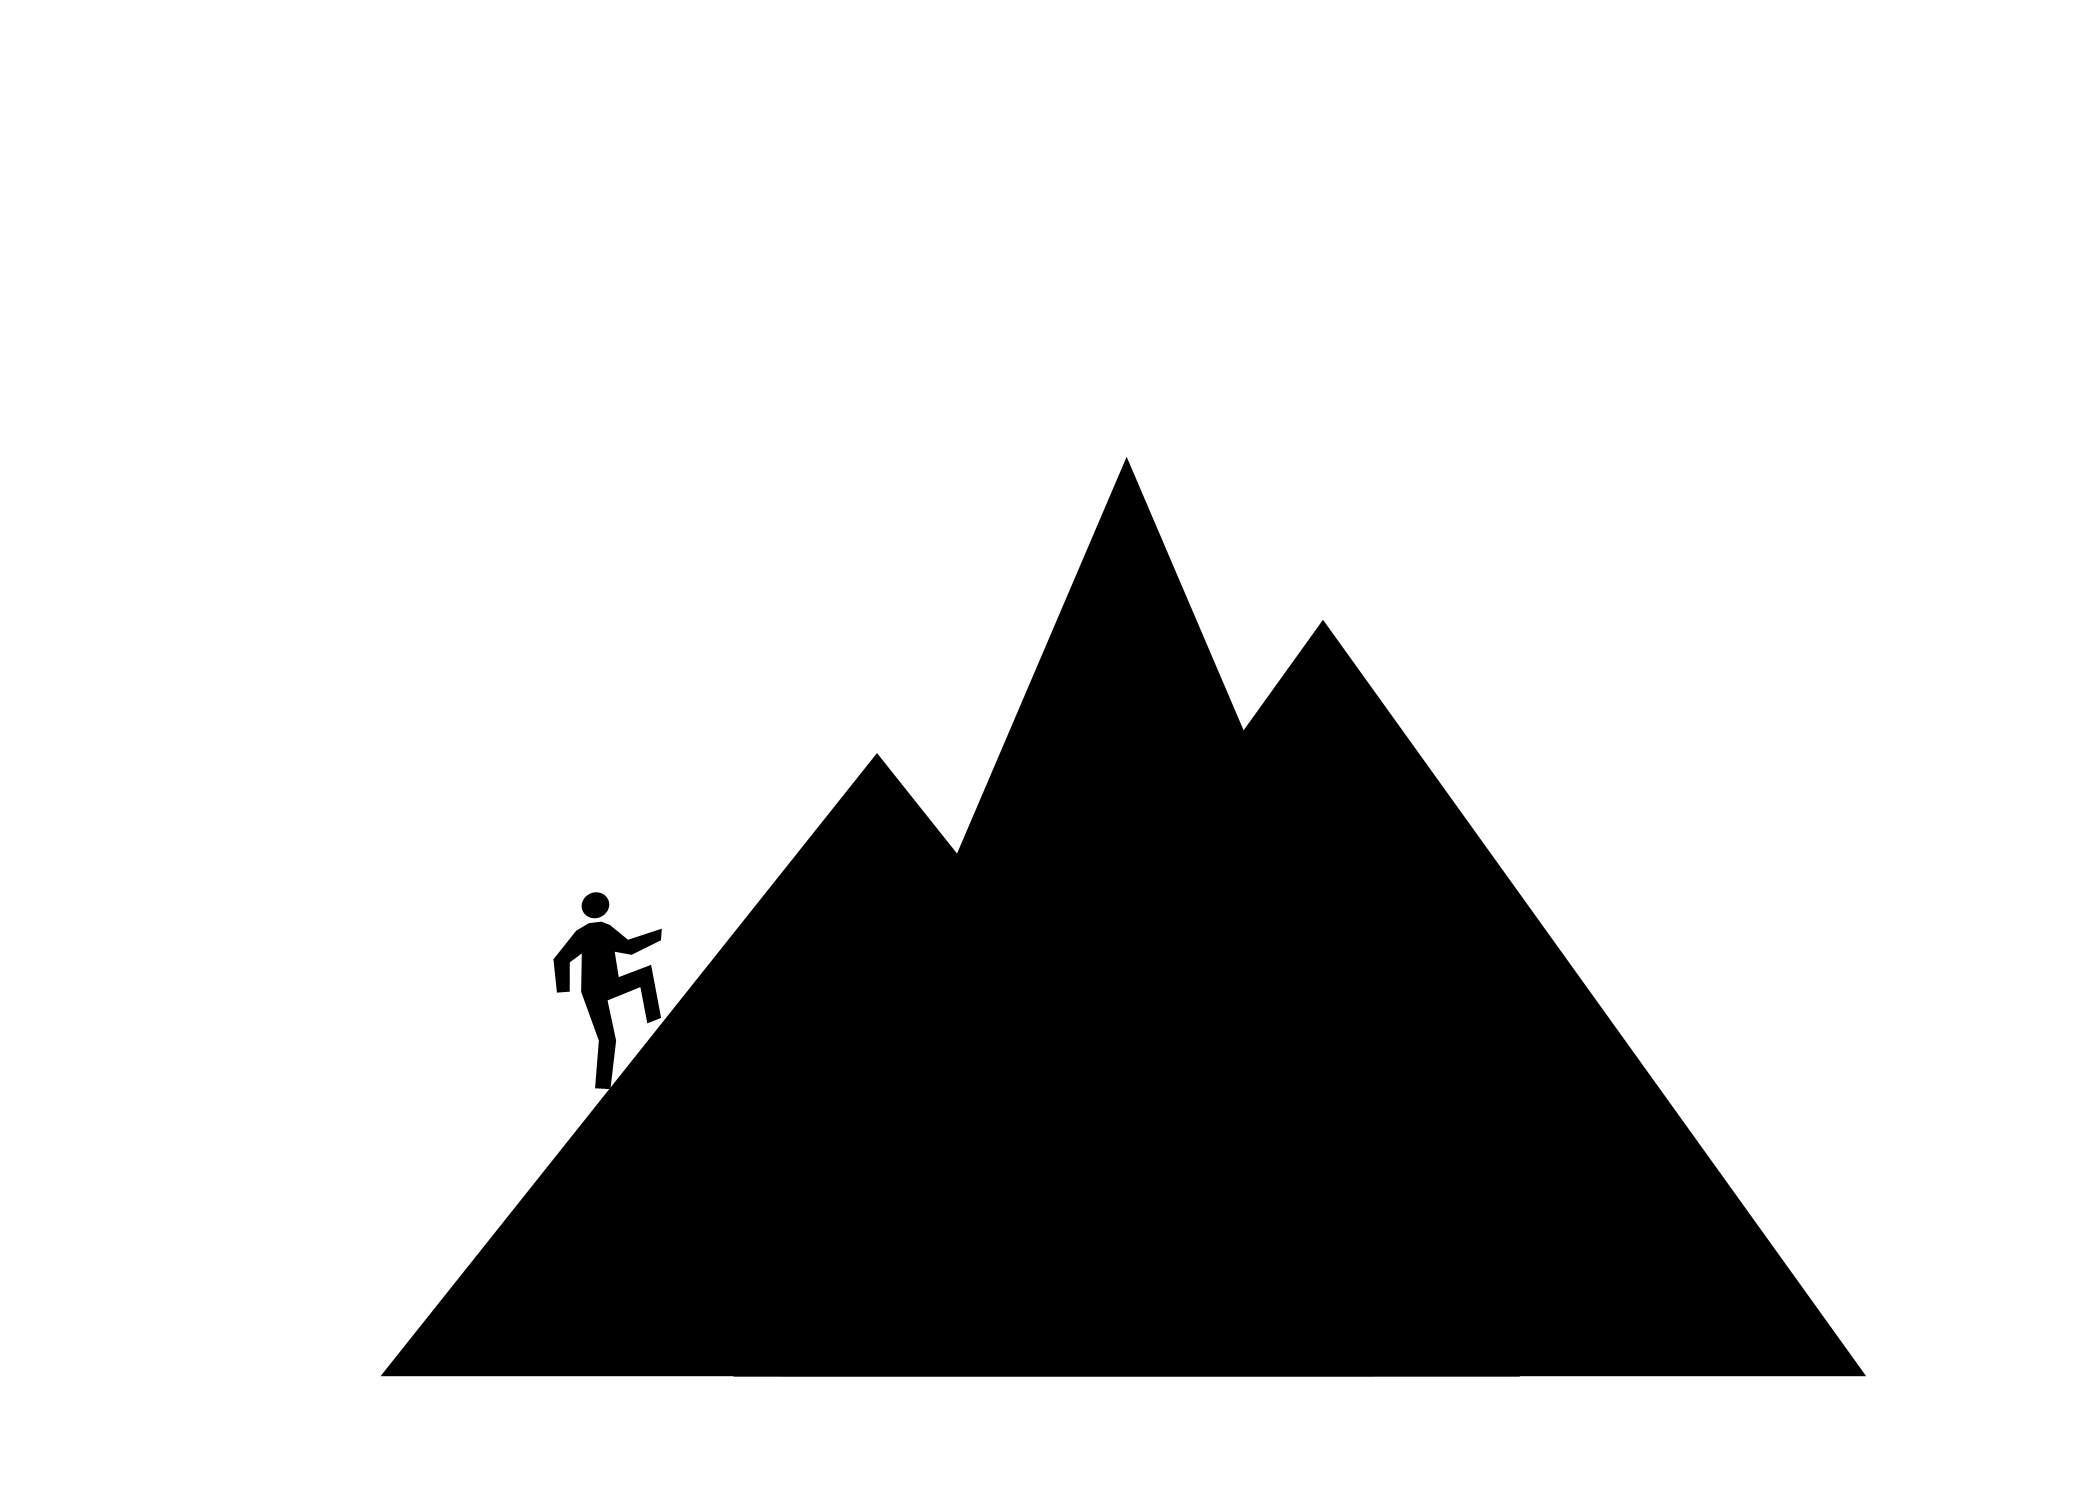 Black Mountain clipart #4, Download drawings